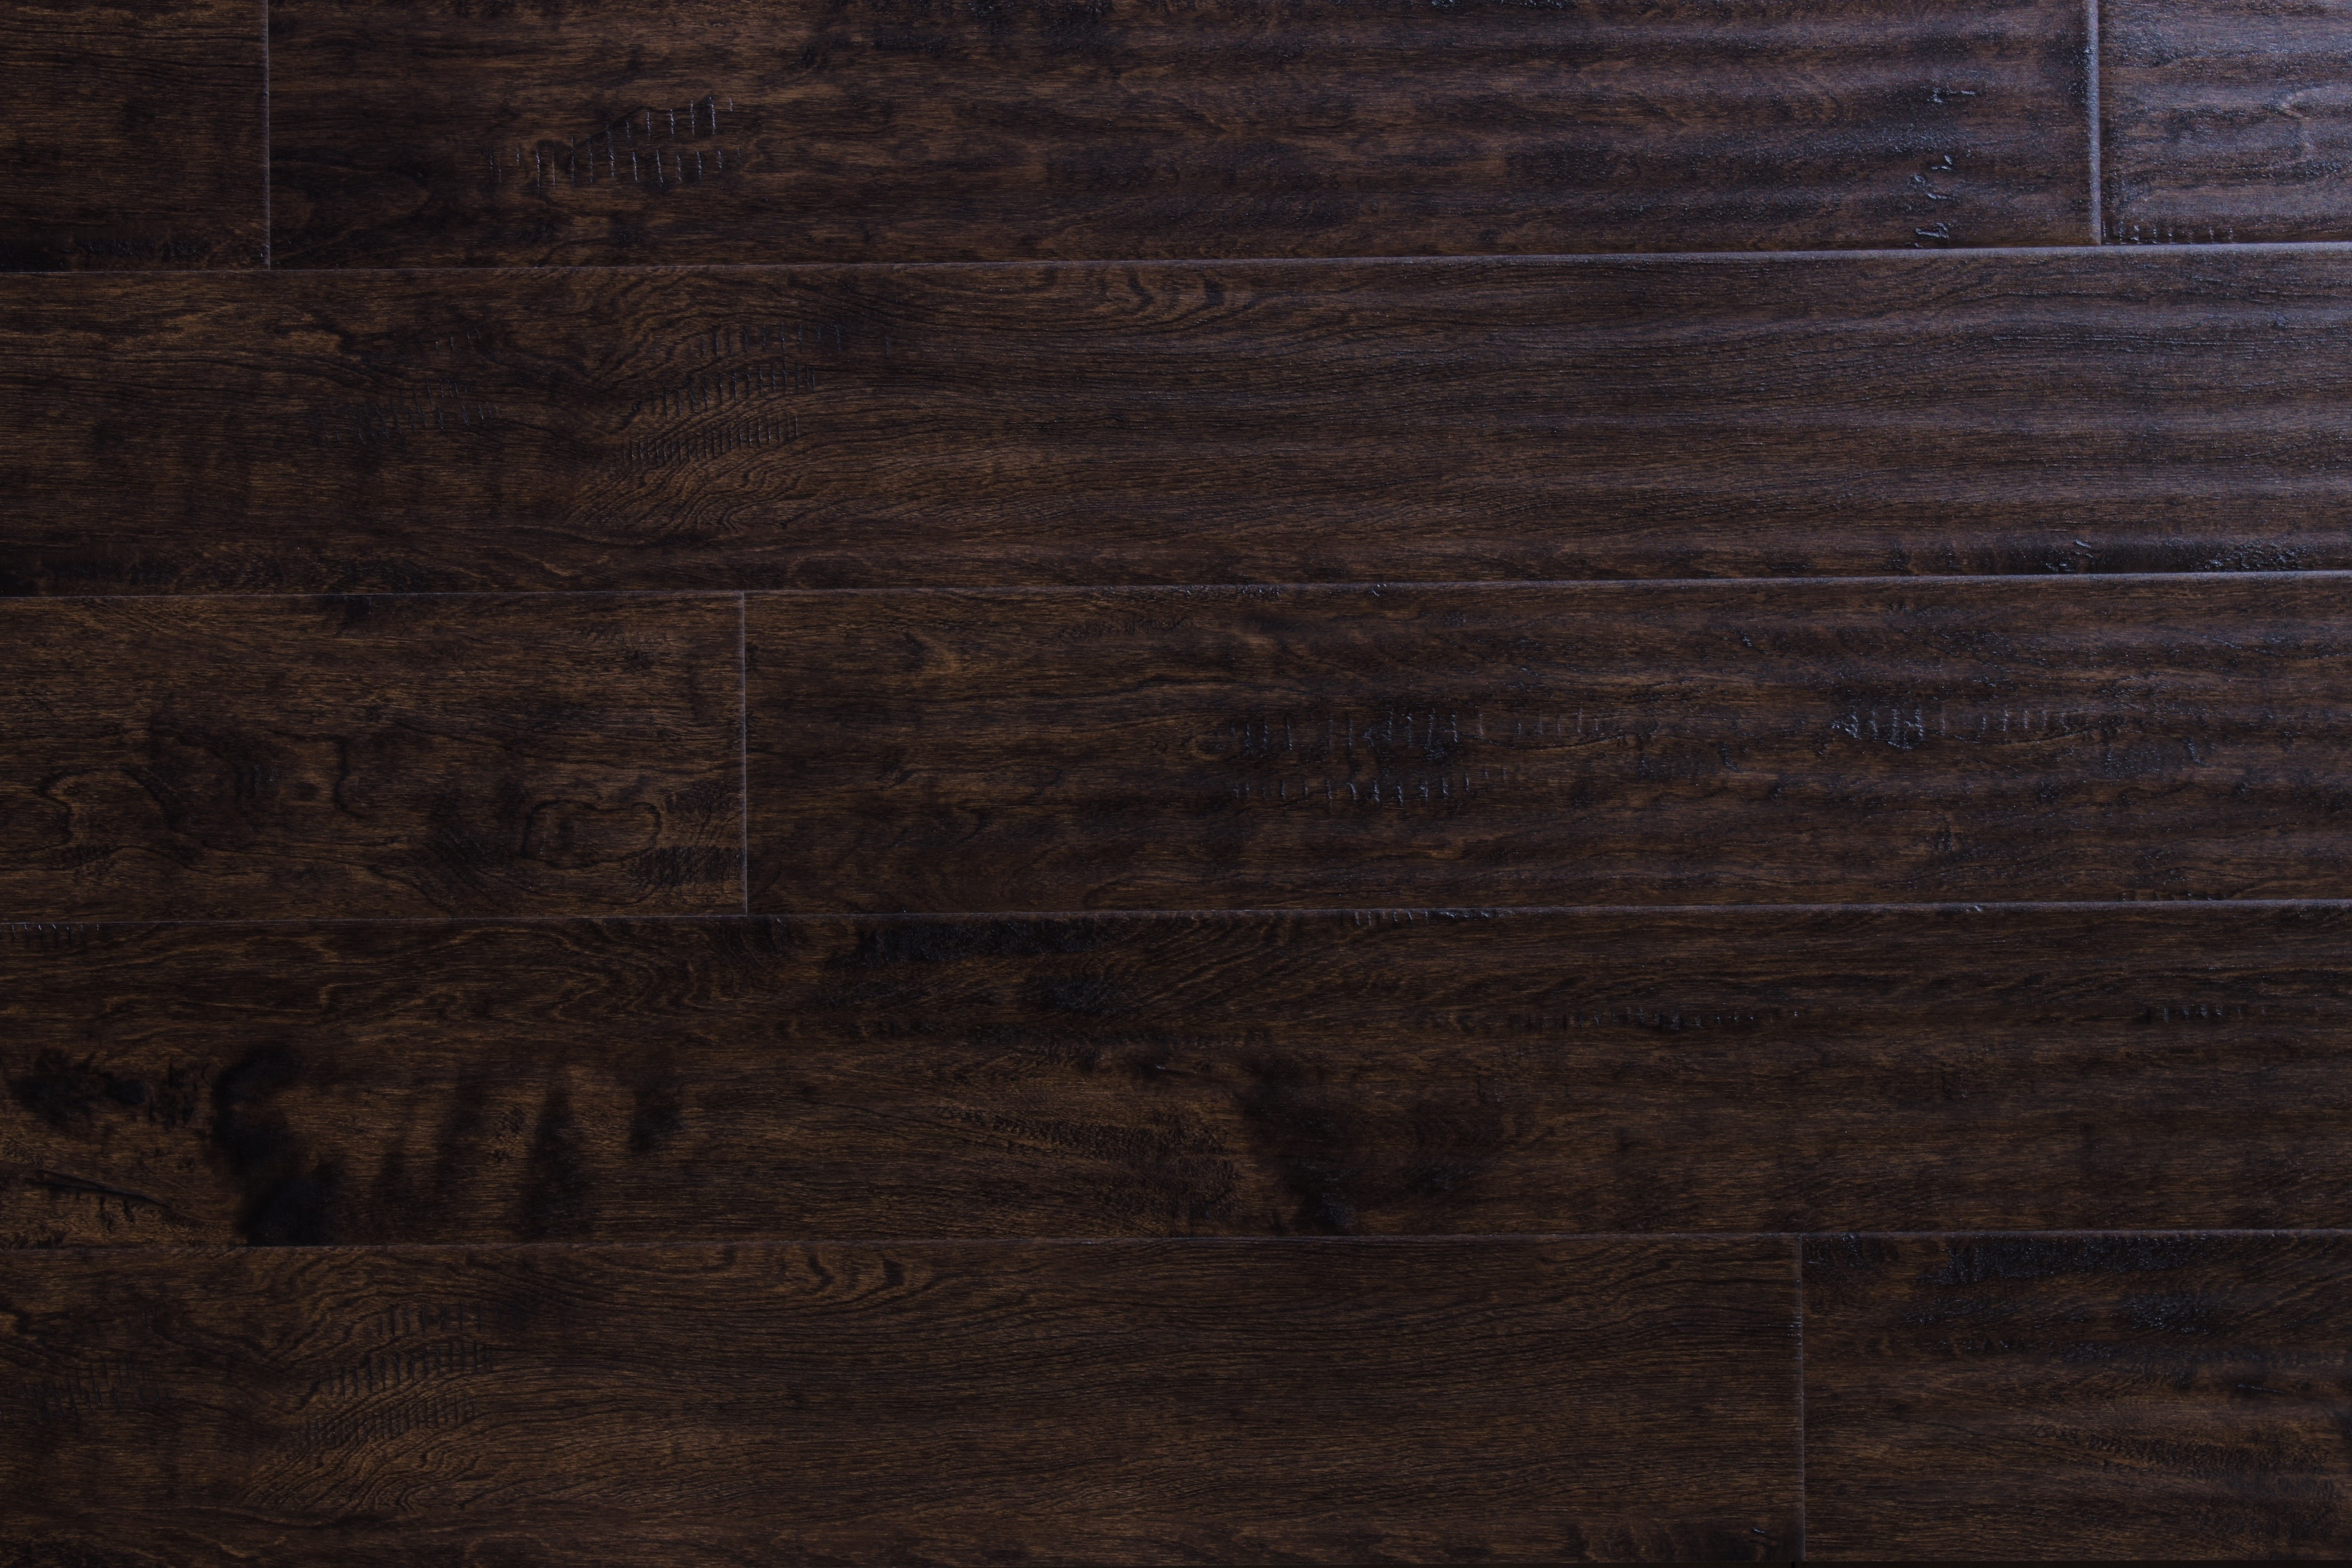 tavern grade hardwood flooring canada of wood flooring free samples available at builddirecta intended for tailor multi gb 5874277bb8d3c